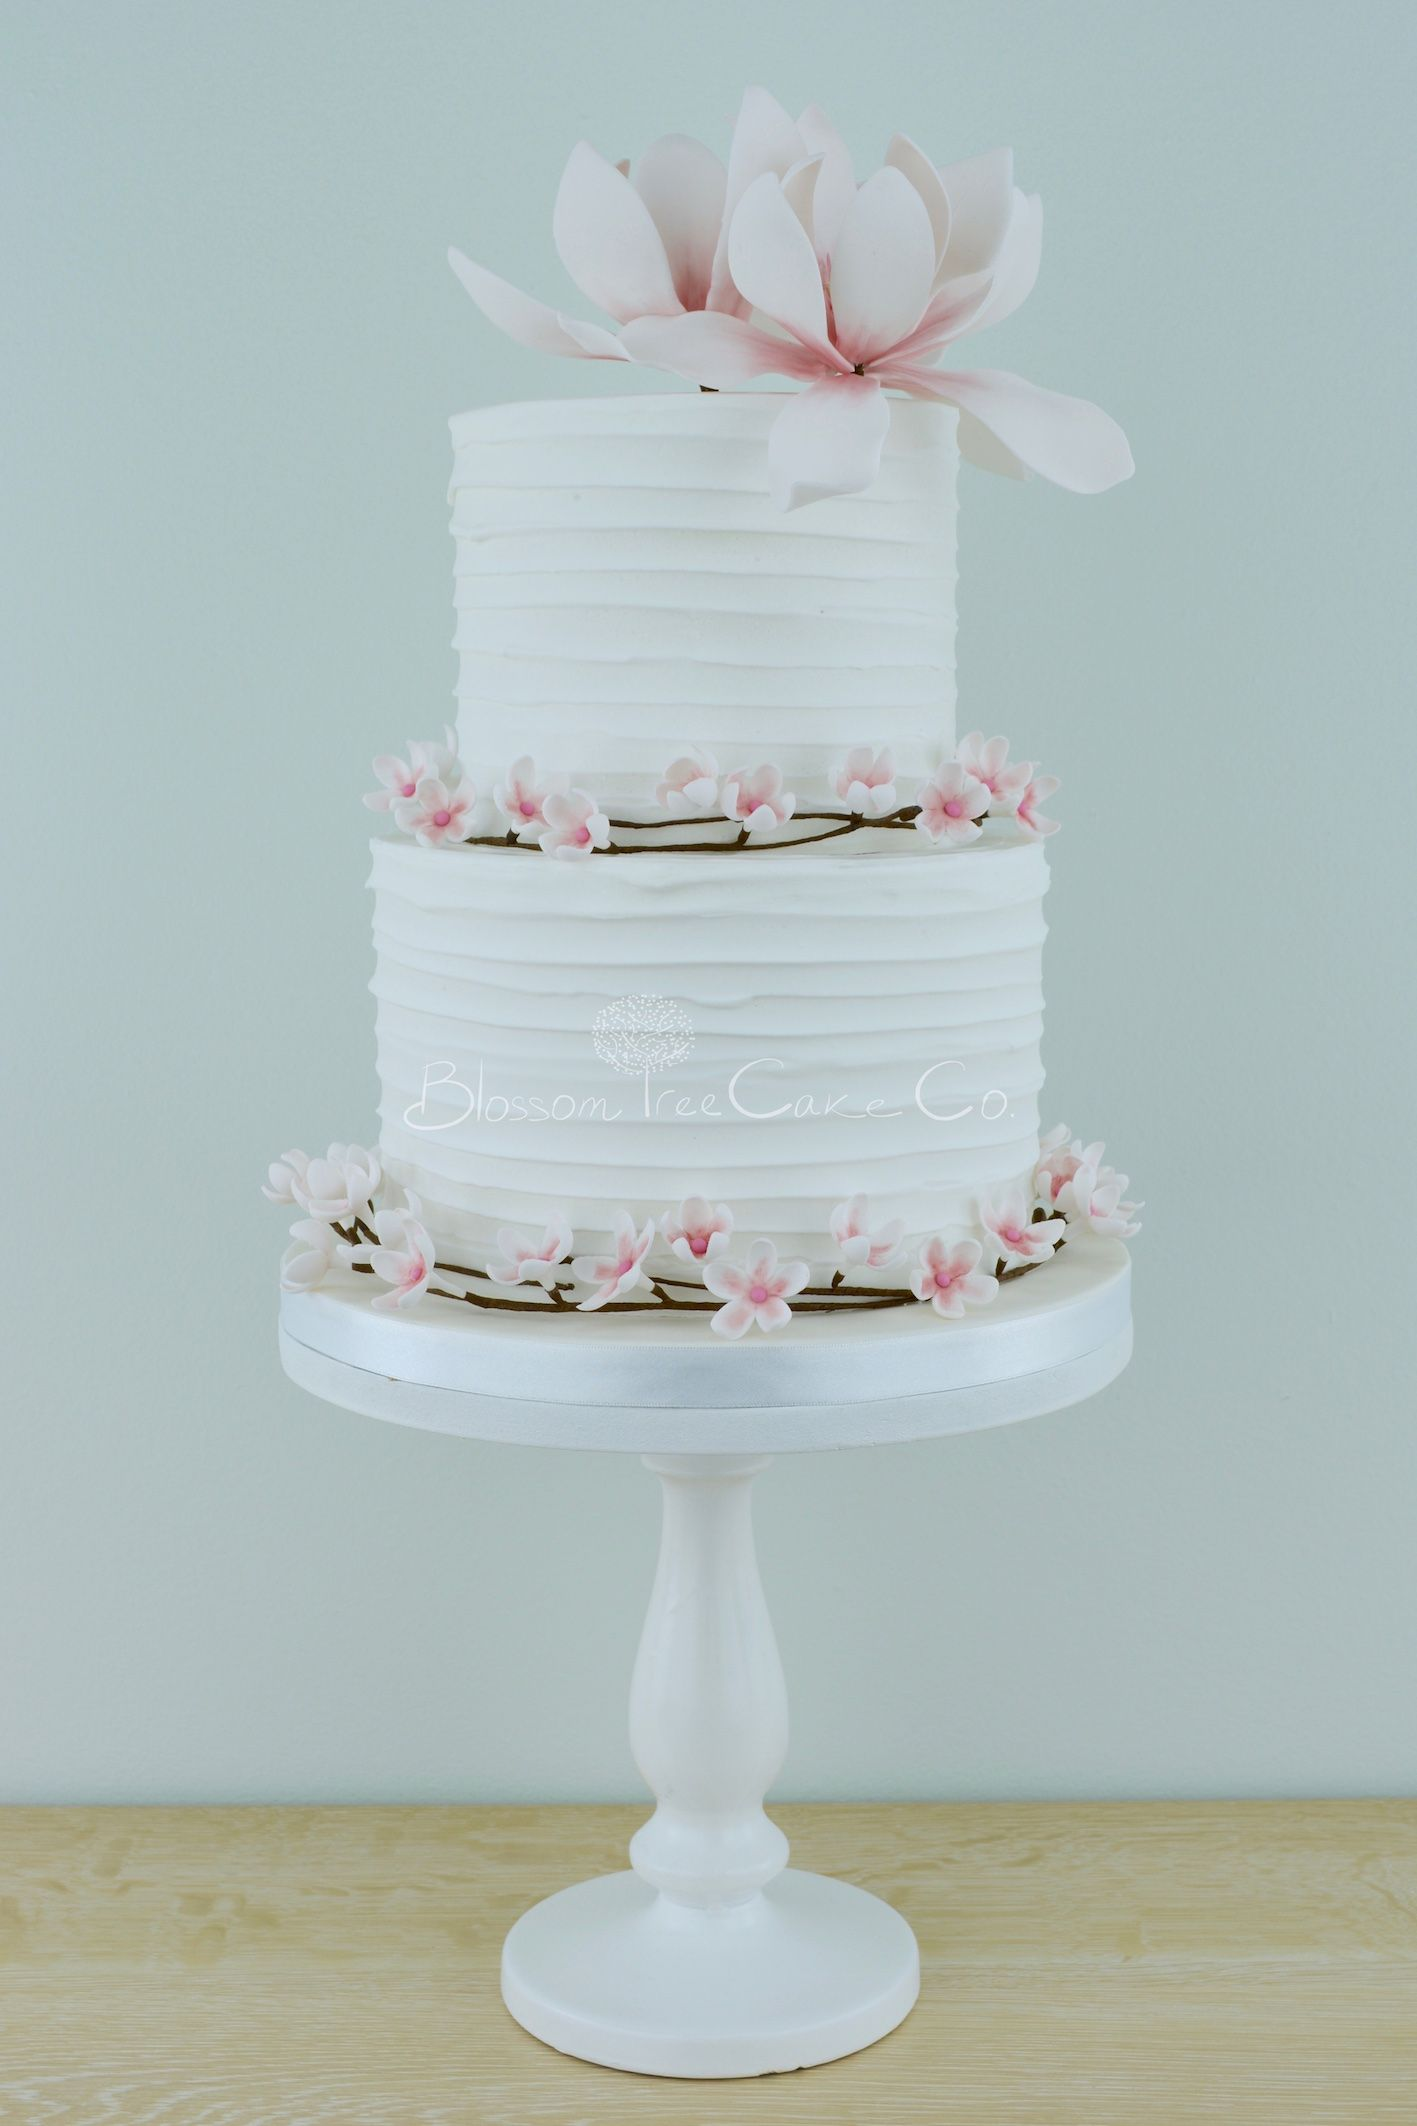 Famous Personalized Wedding Cake Toppers Big Cheap Wedding Cakes Rectangular Square Wedding Cakes 5 Tier Wedding Cake Young Best Wedding Cake Recipe ColouredWedding Cake Cutter Cherry Blossom Wedding Cake   Le « Cherry Blossom Cake » { Le ..